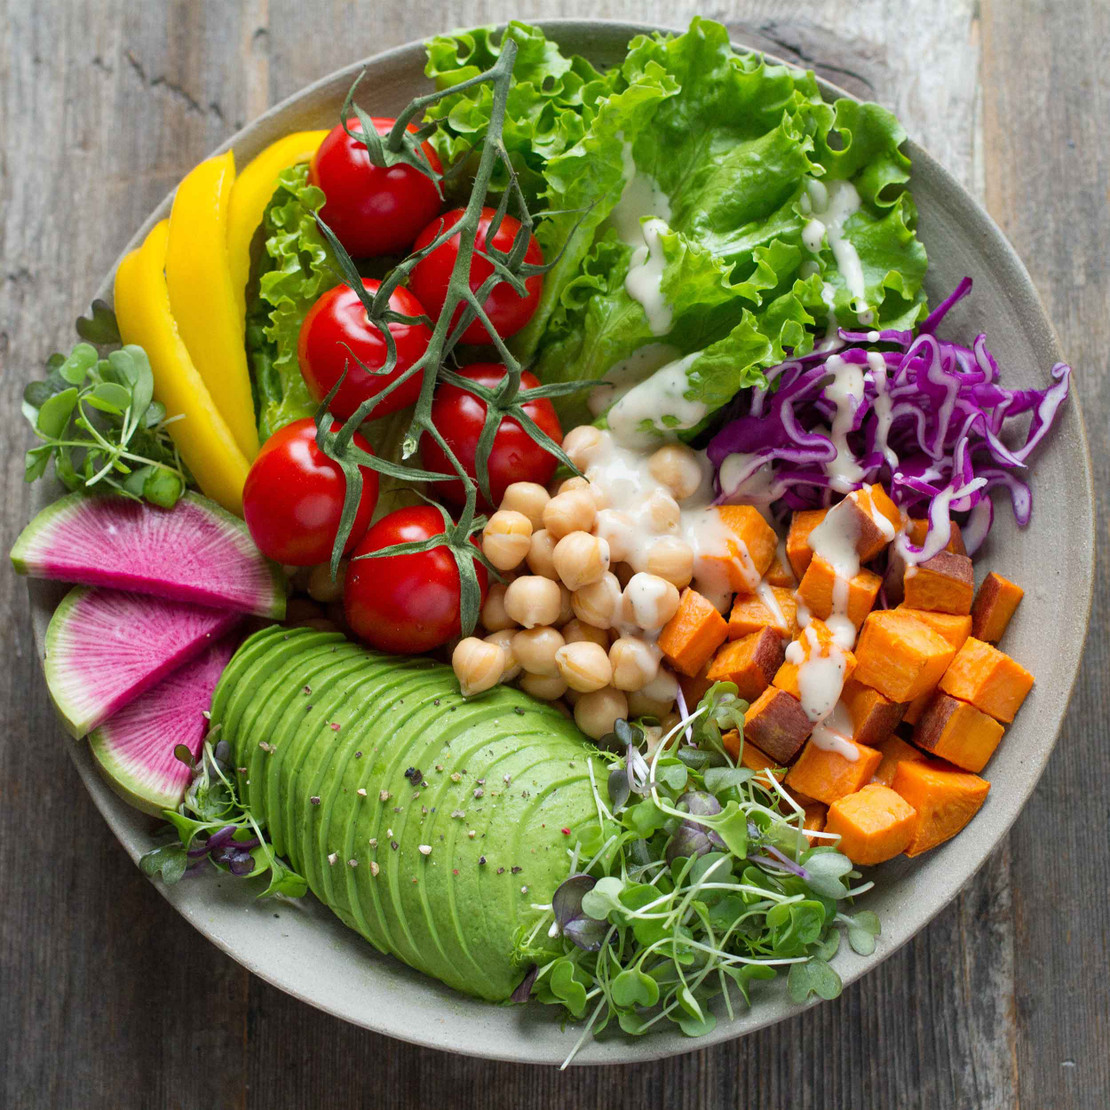 Resources for the Healthy Chef